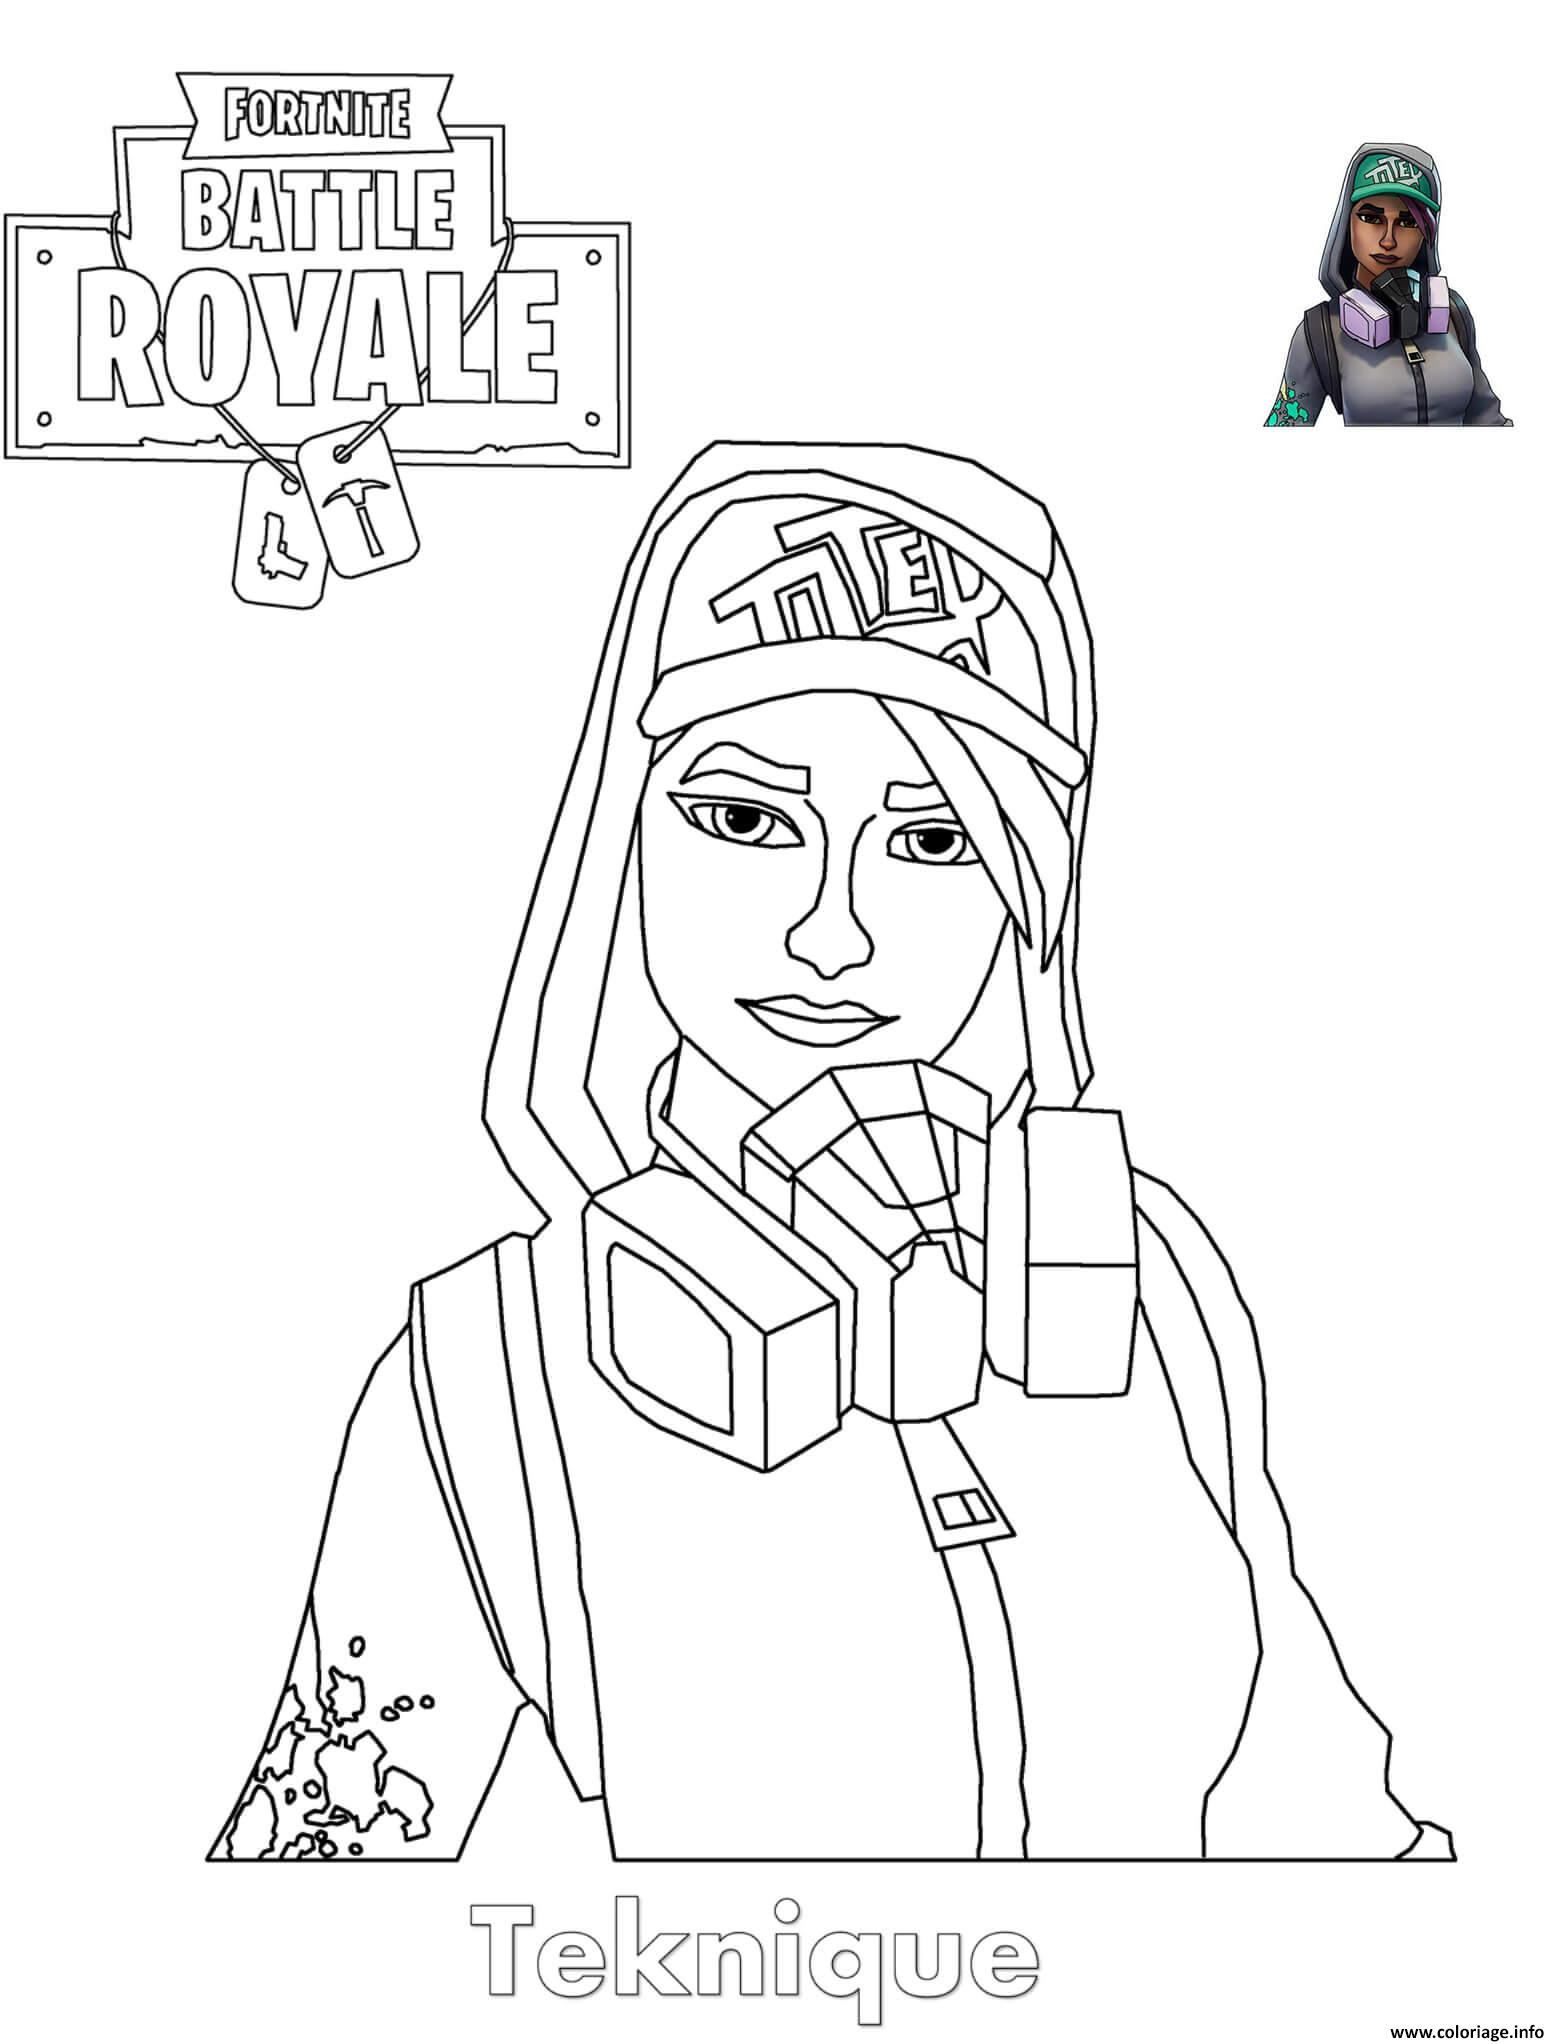 Coloriage A Imprimer Gratuit Fortnite.Coloriage Teknique Fortnite Girl Jecolorie Com